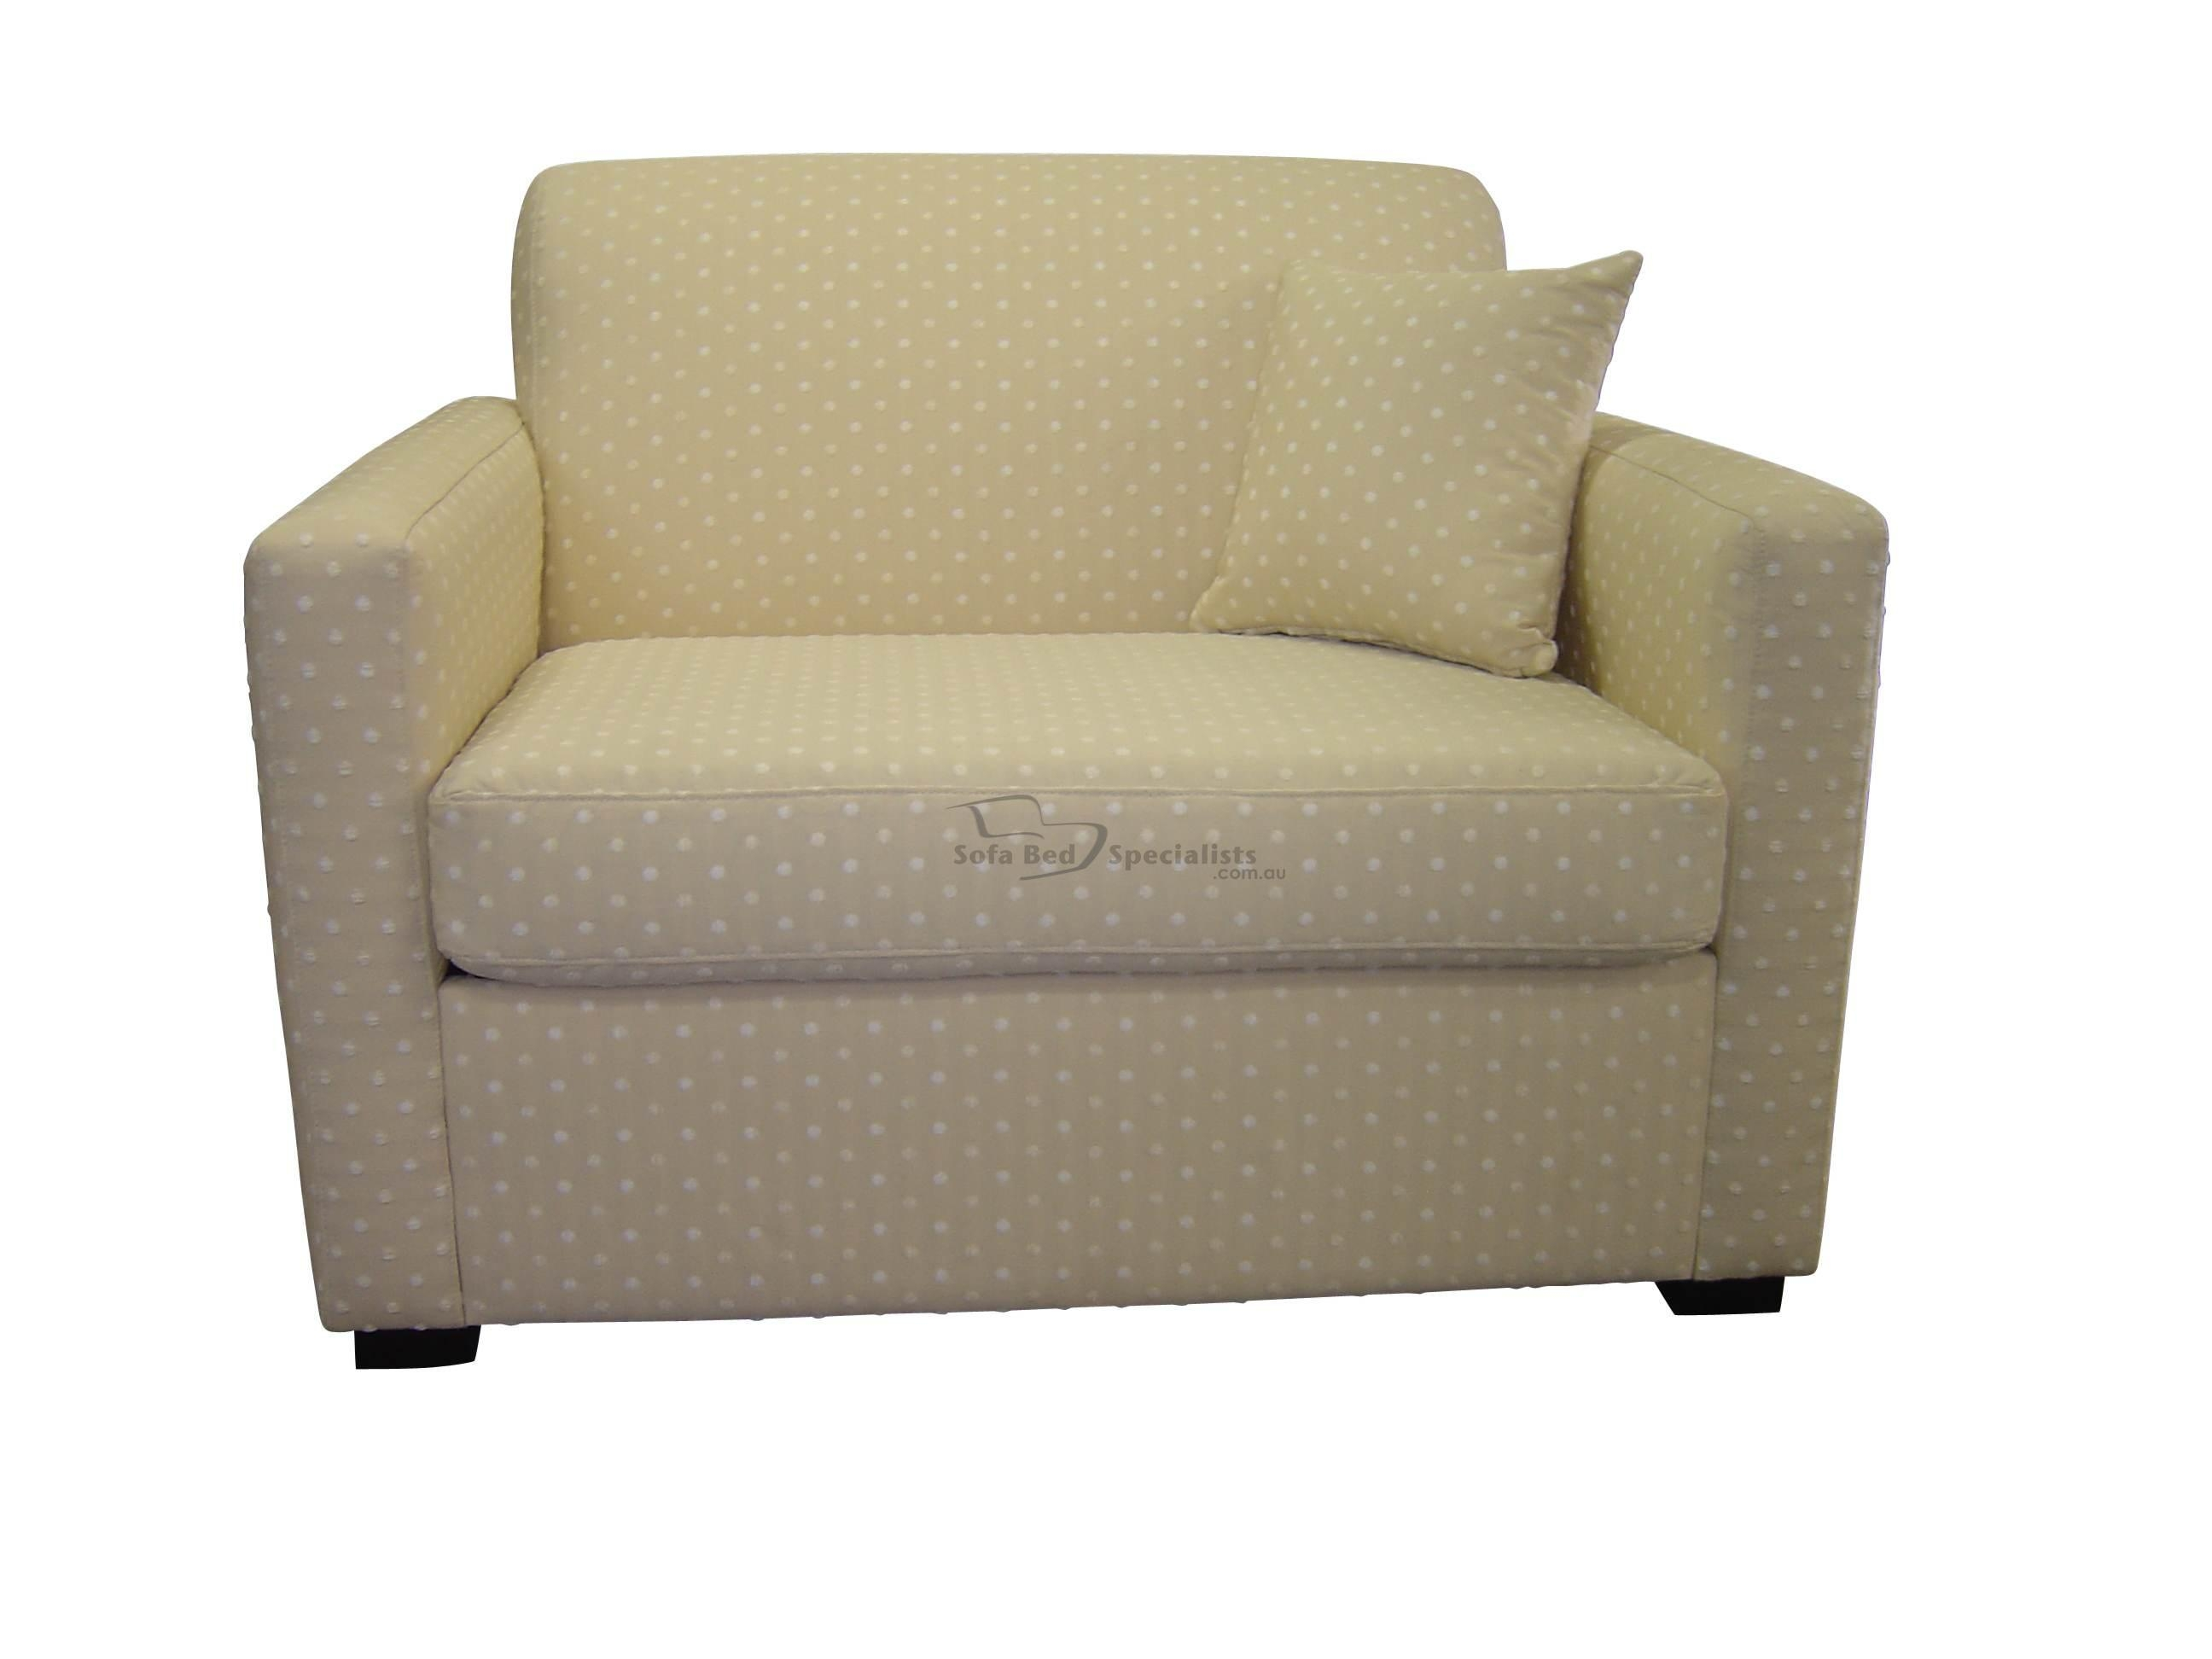 Chair Sofabed Bowman – Sofa Bed Specialists With Single Chair Sofa Beds (View 8 of 22)